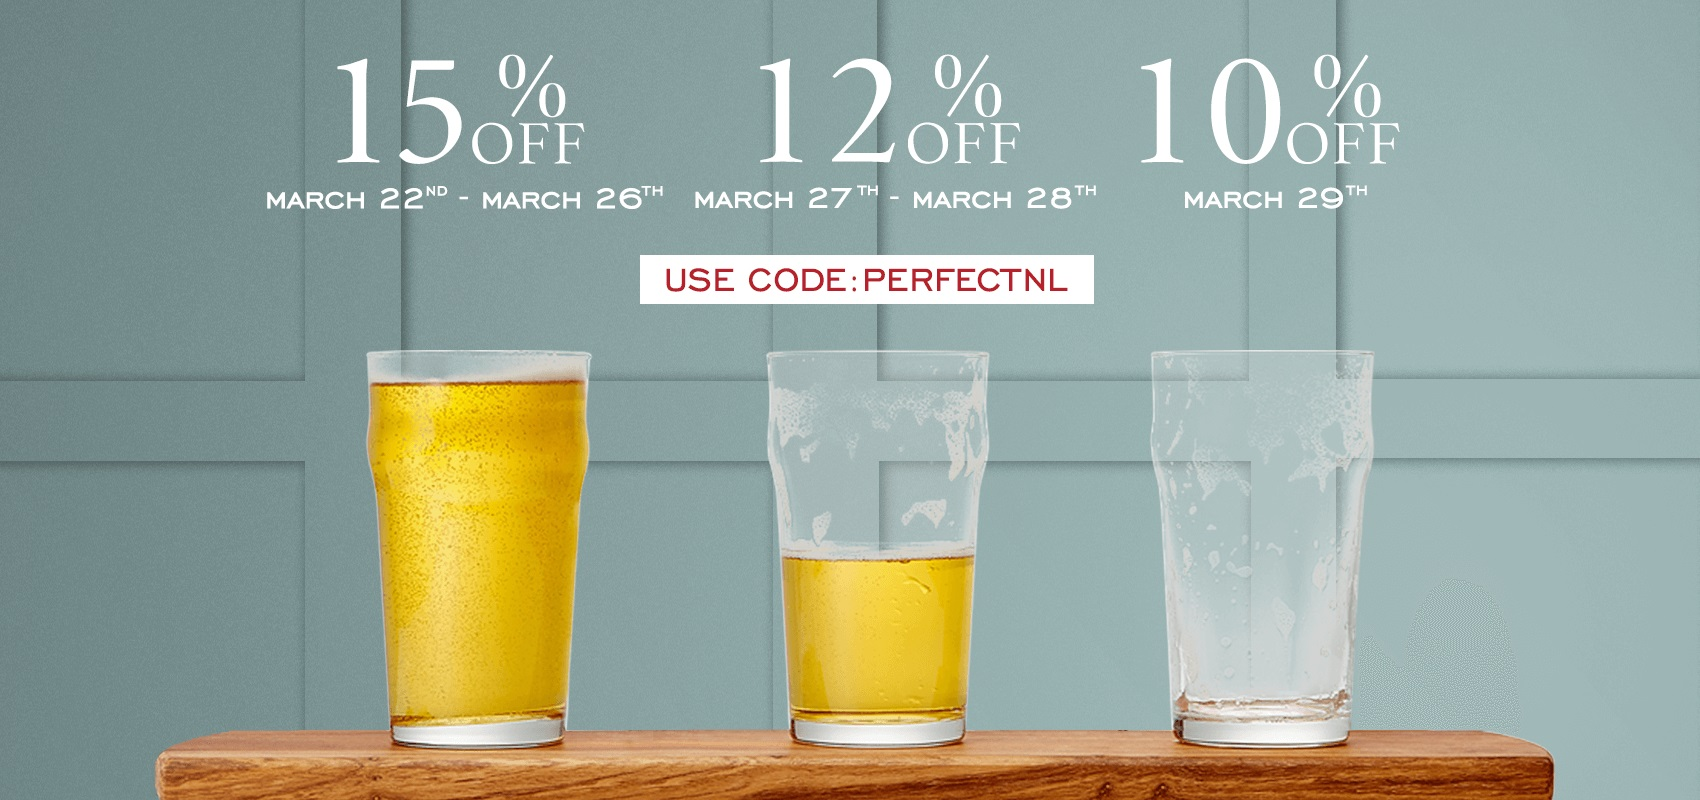 15% off everything March 22nd to March 26th, 12% off March 27th to March 28th, 10% off March 29th with code PERFECTNL